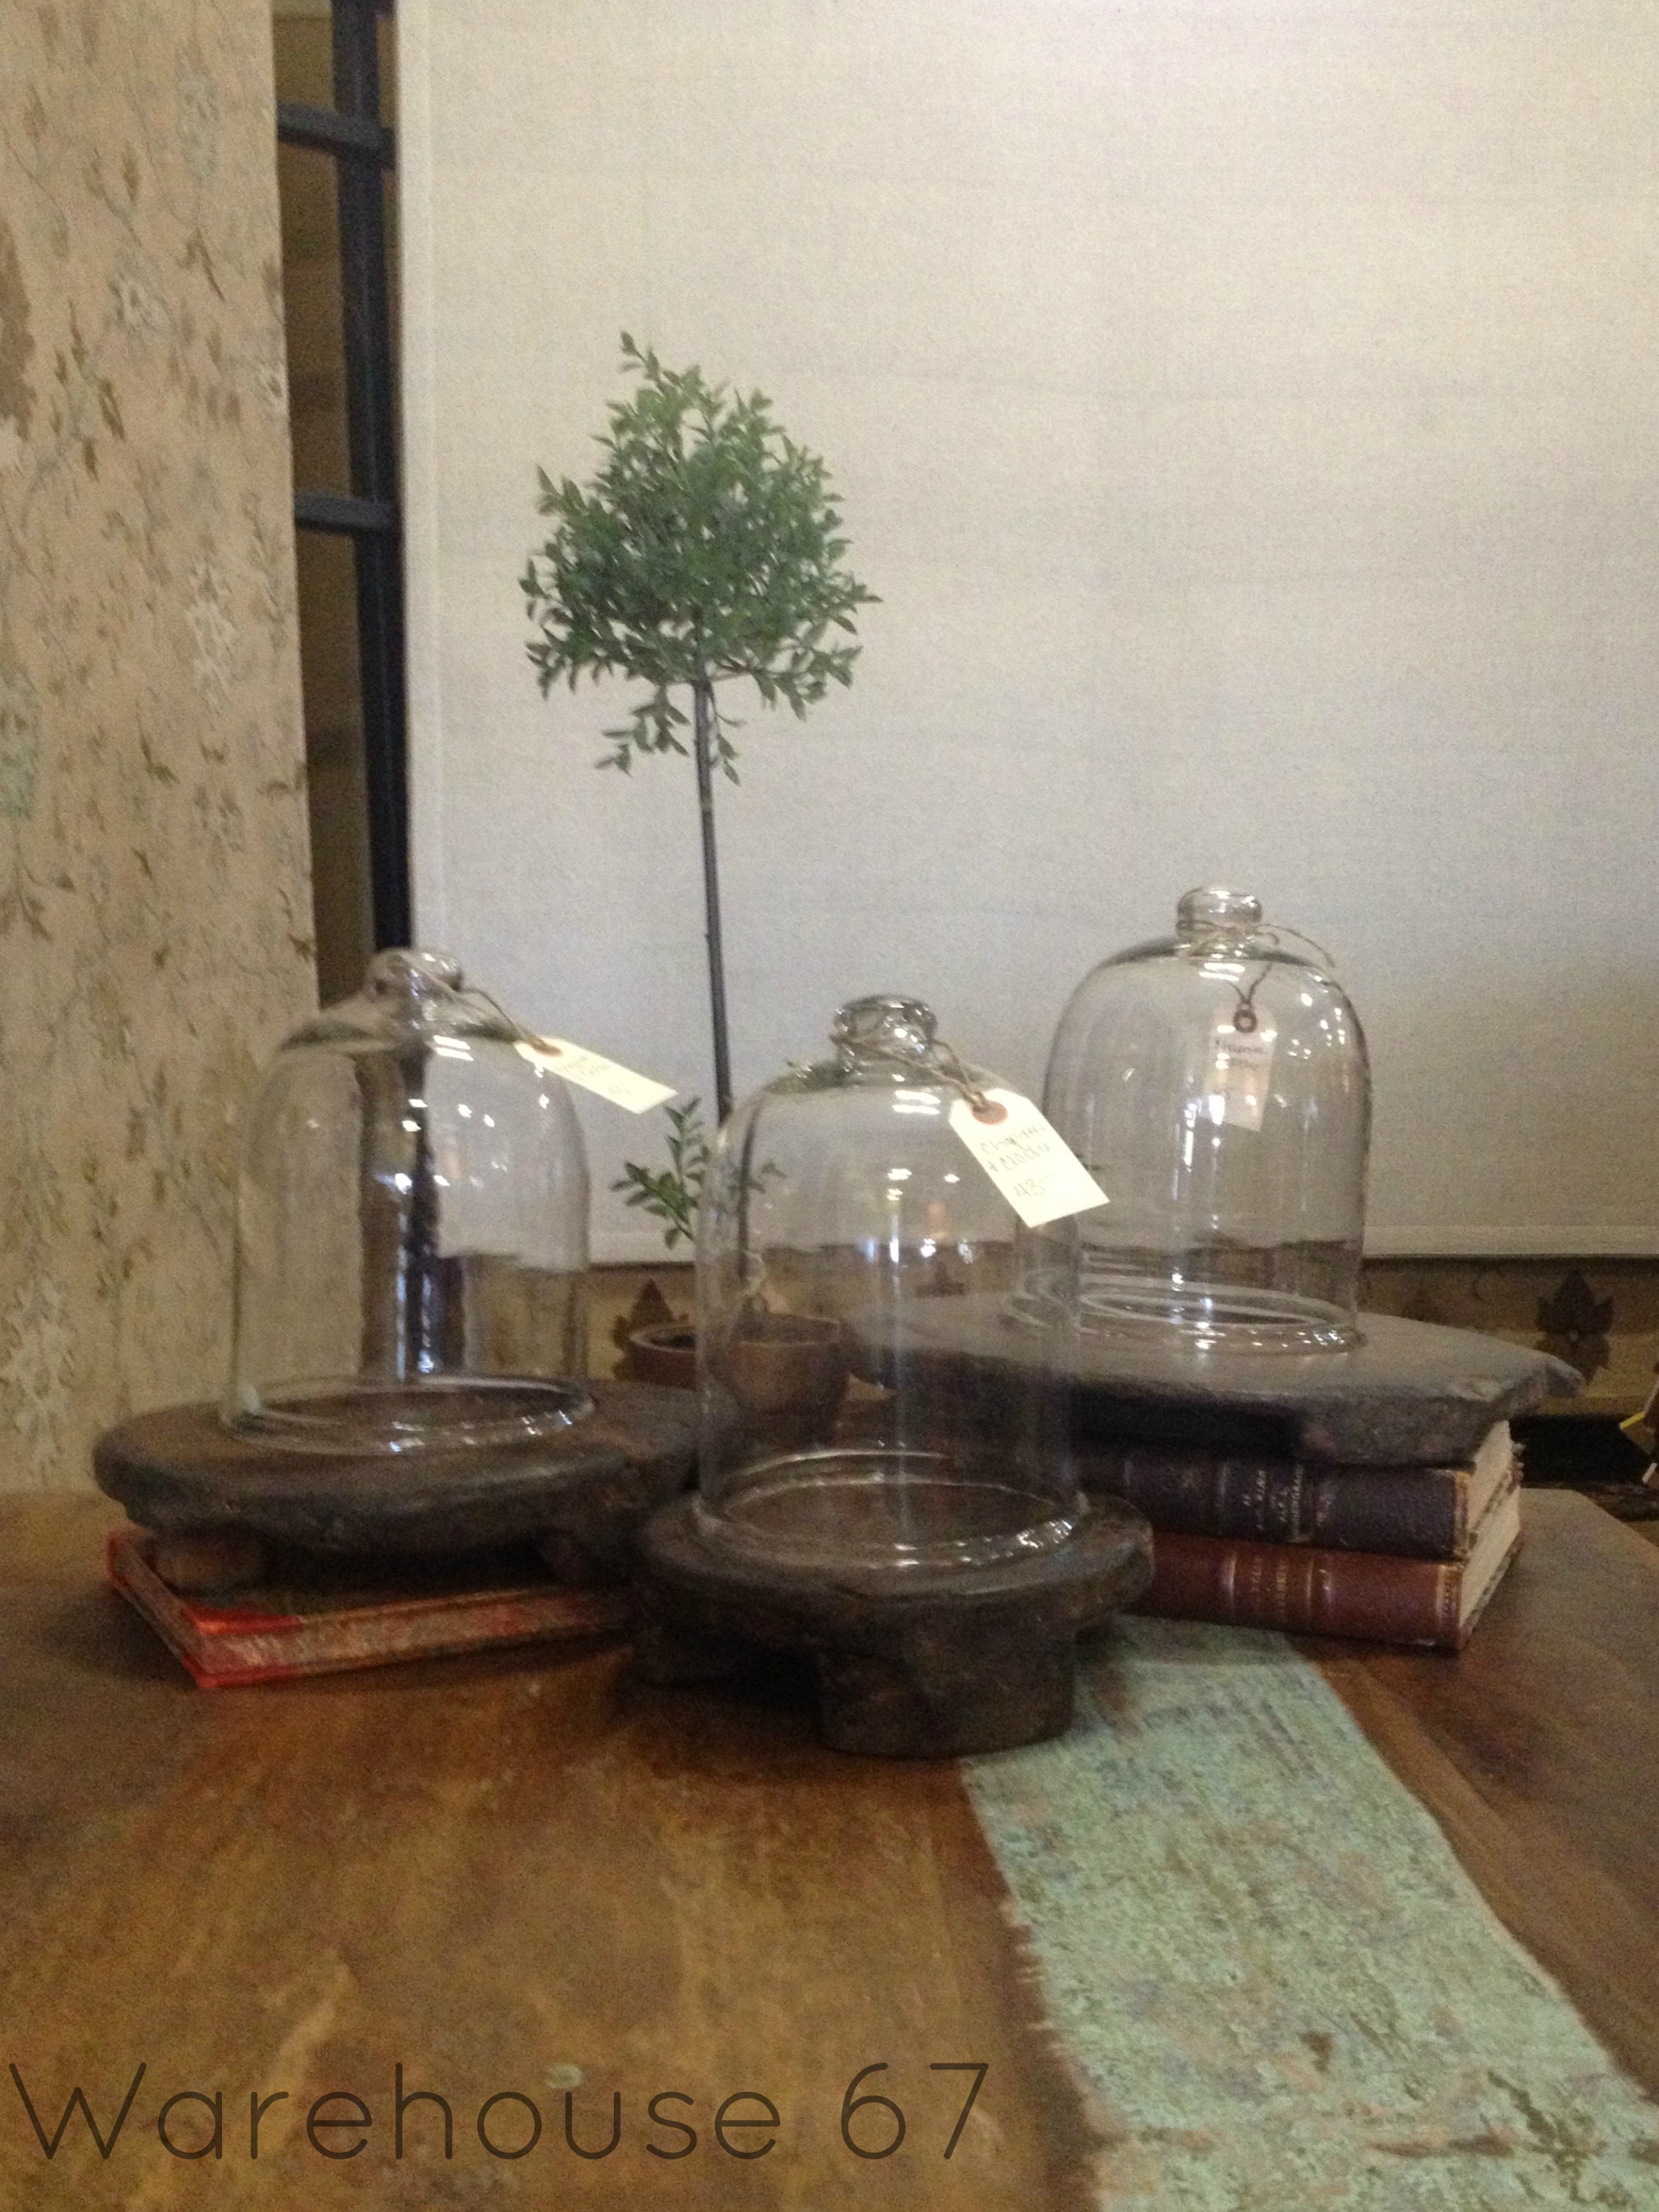 Tempting Chapatti Plate & Cloches here at Warehouse 67! Only $43 for a set!  www.Warehouse67design.com